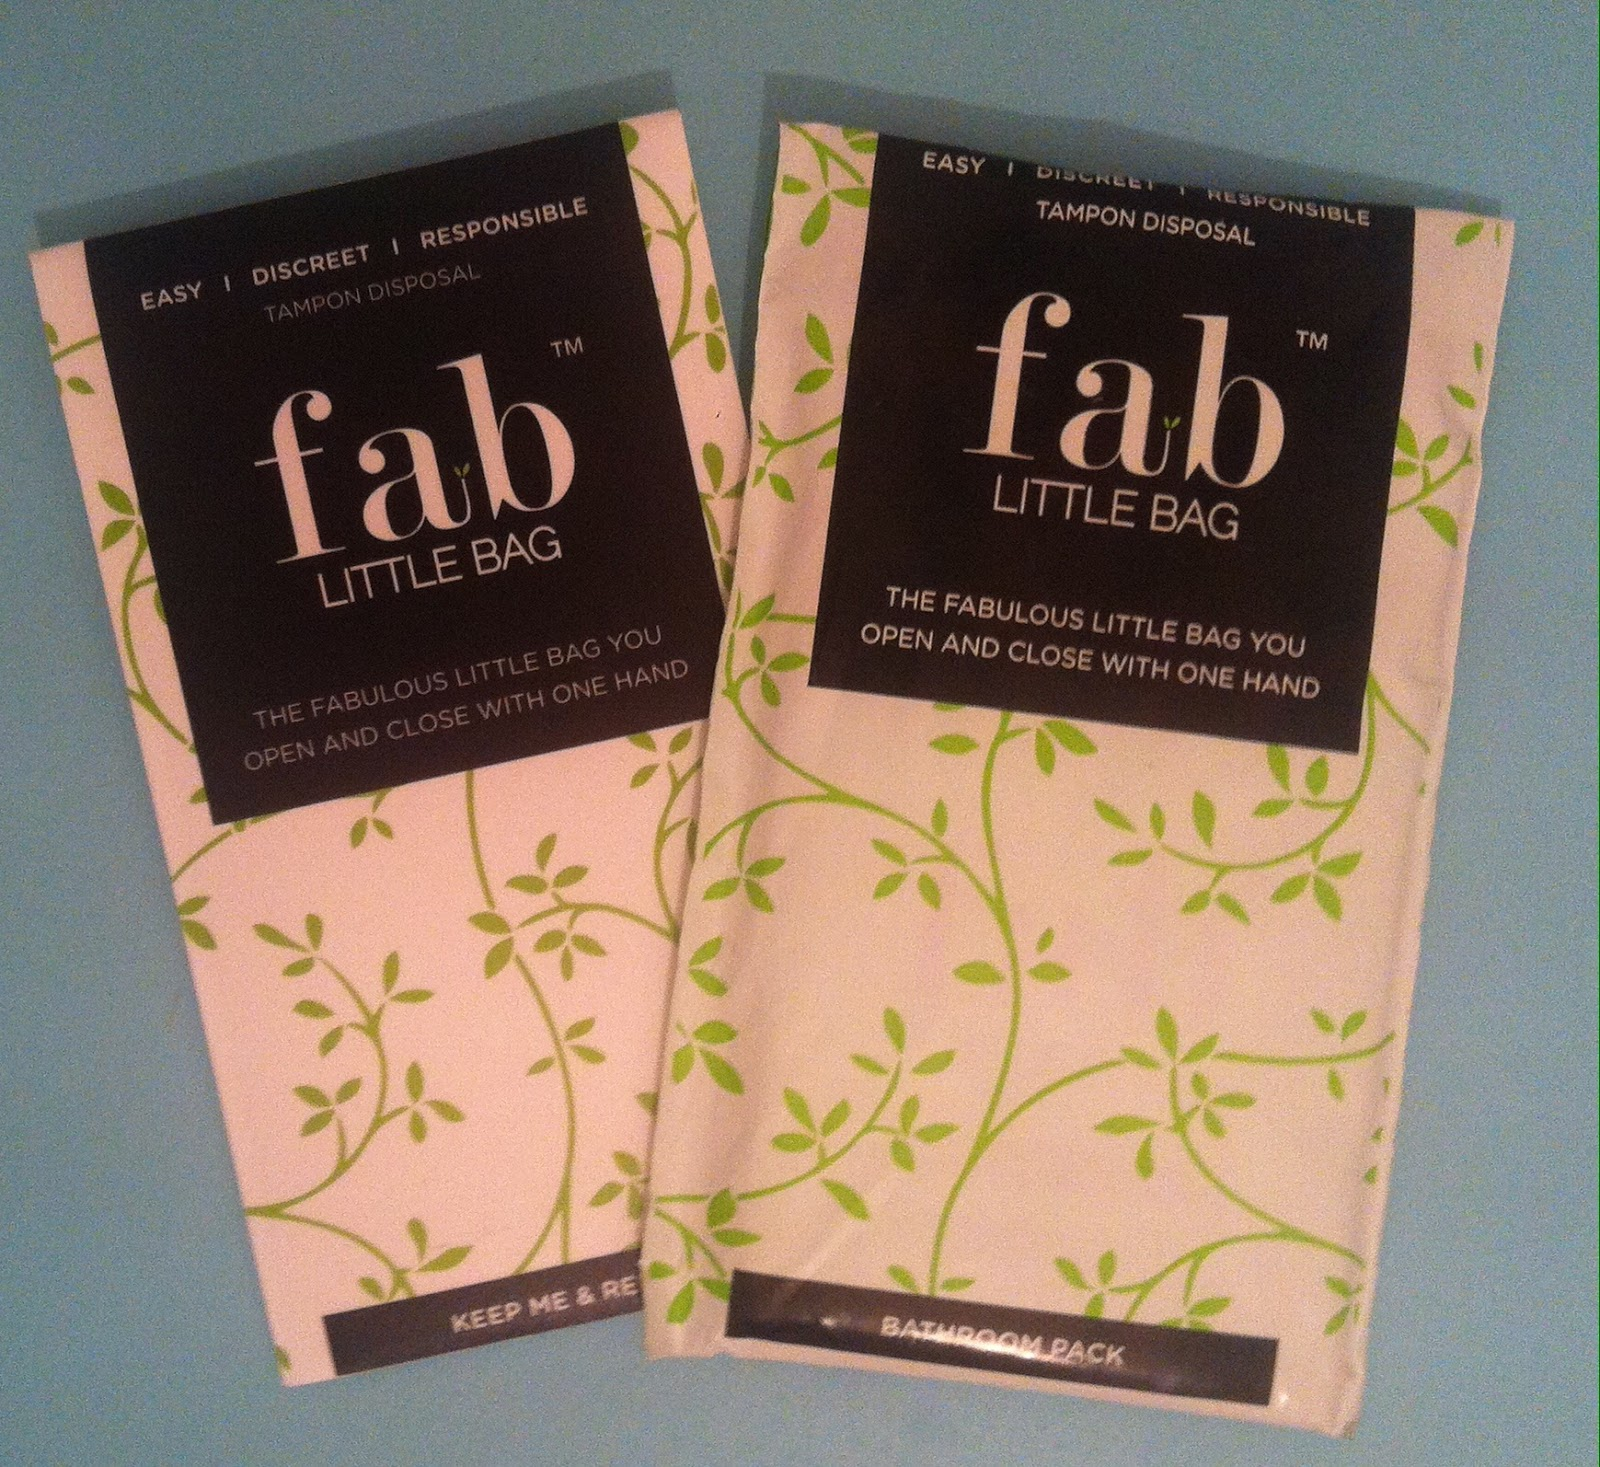 Fablittlebag Is A New Small Bag To Finally Provide Women And S With The Opportunity Dispose Of Their Tampons In Discreet Hygienic Easy Way